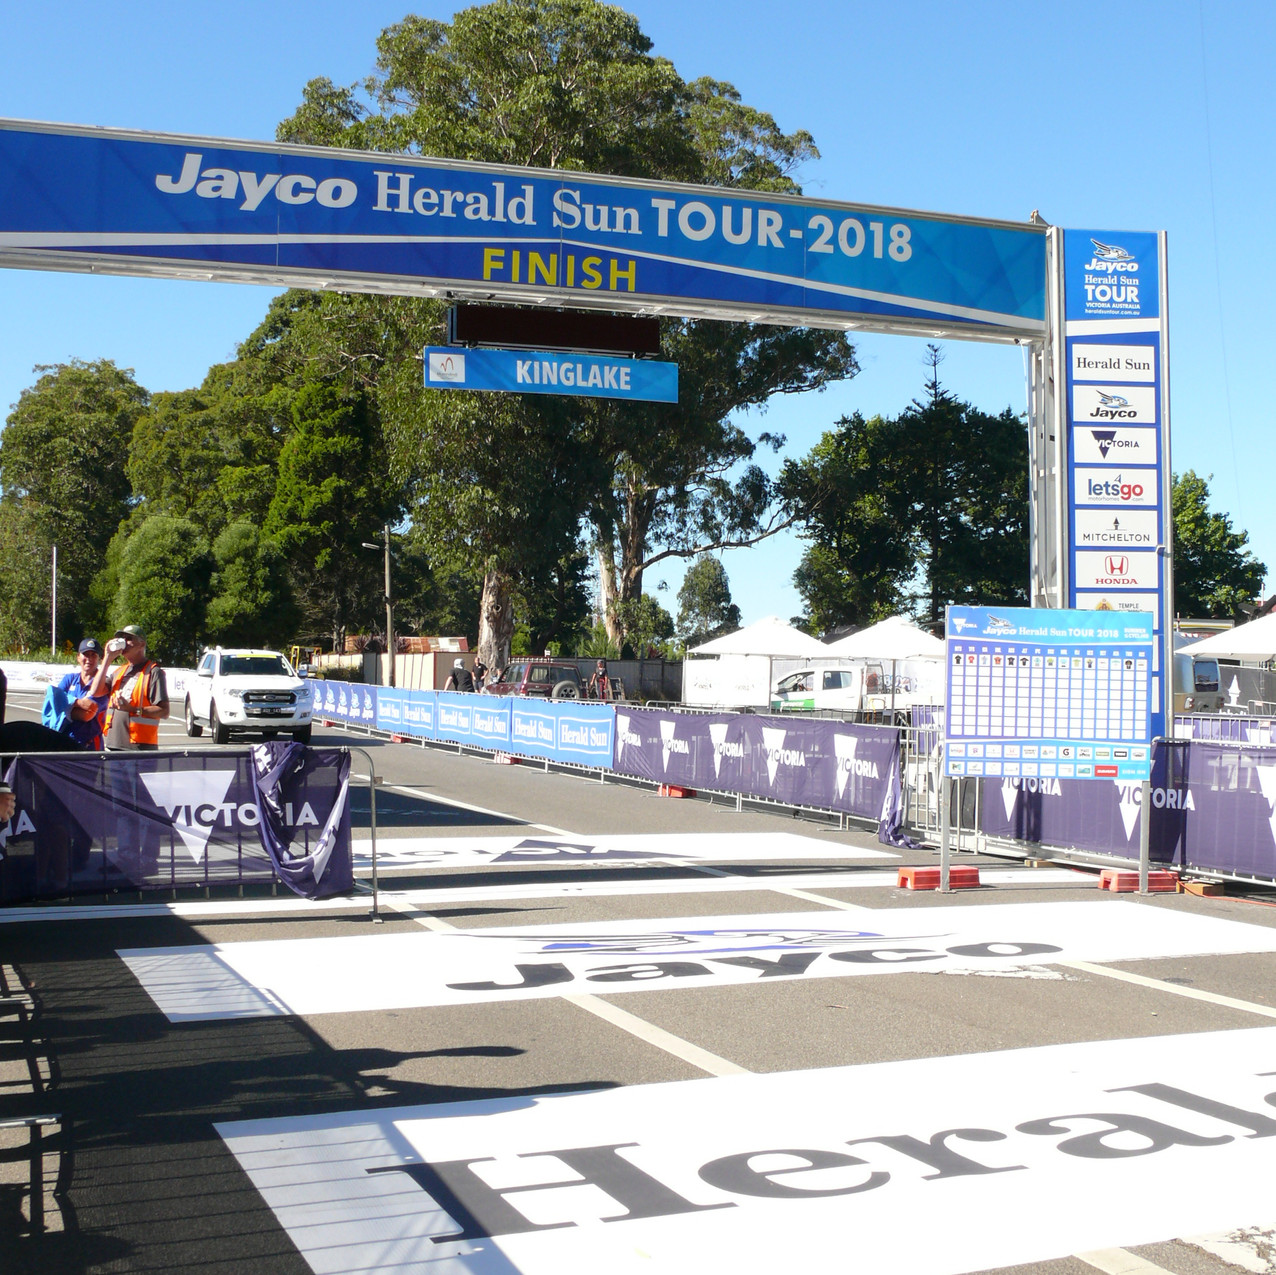 The final stage of the Jayco-Herald